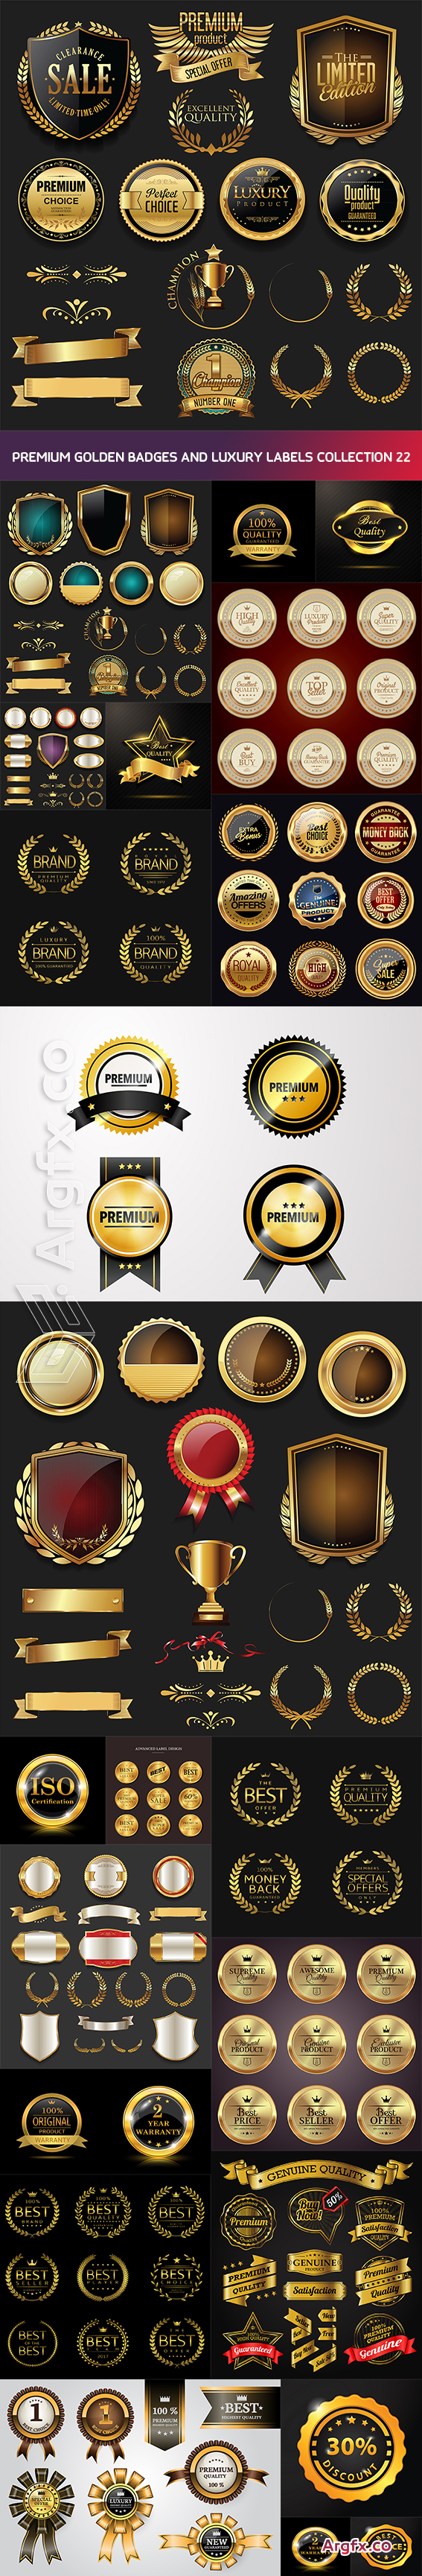 Premium golden badges and luxury labels collection 22